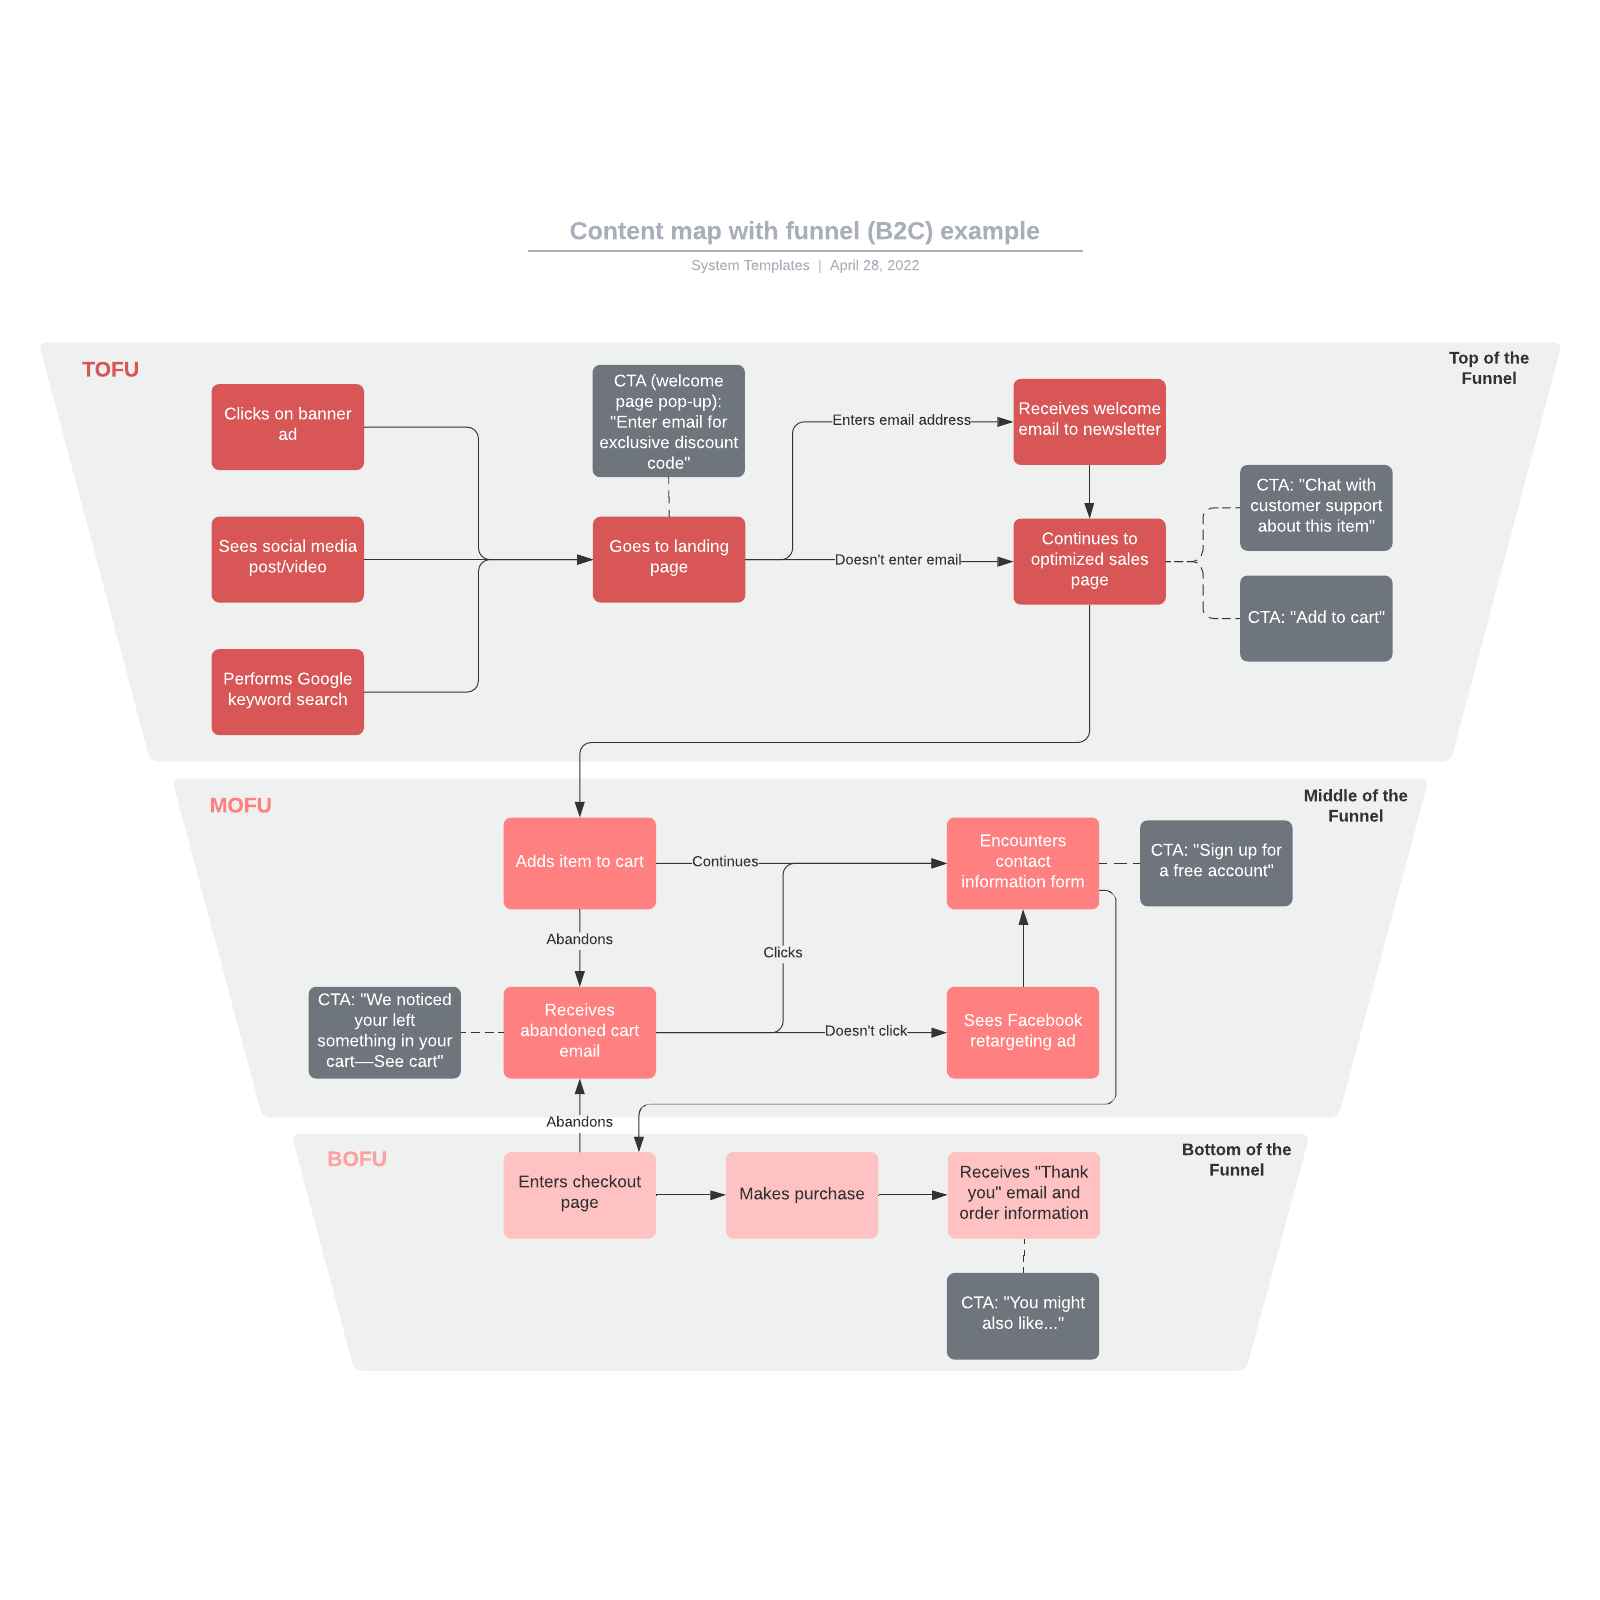 Content map with funnel (B2C) example